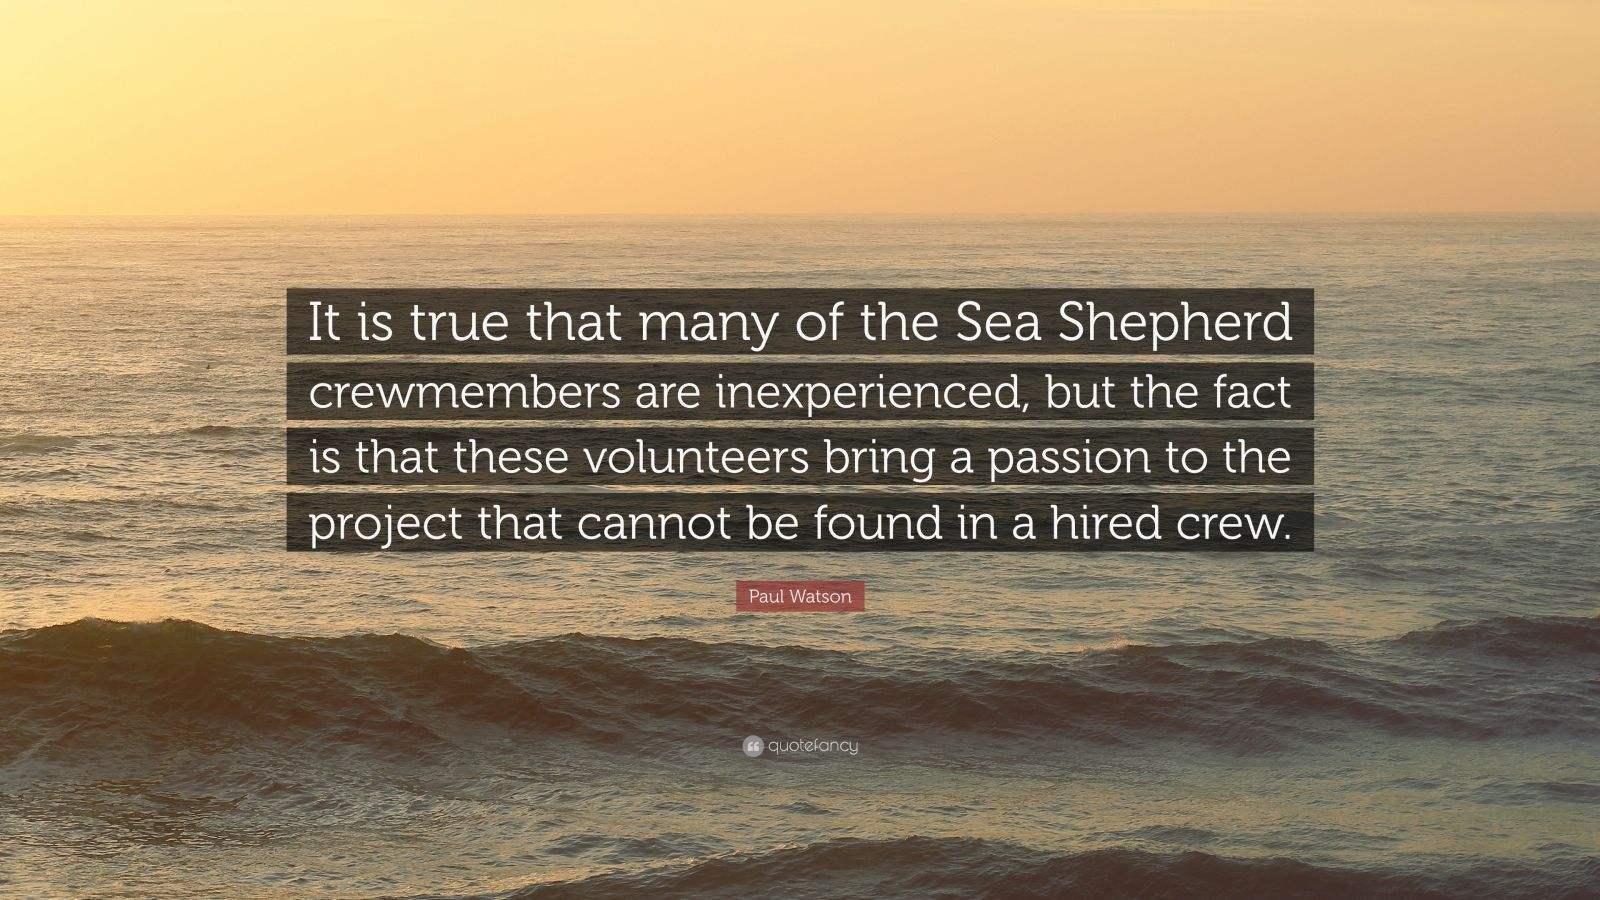 "Paul Watson Quote: ""It is true that many of the Sea Shepherd crewmembers are inexperienced, but the fact is that these volunteers bring a passion to the project that cannot be found in a hired crew."""